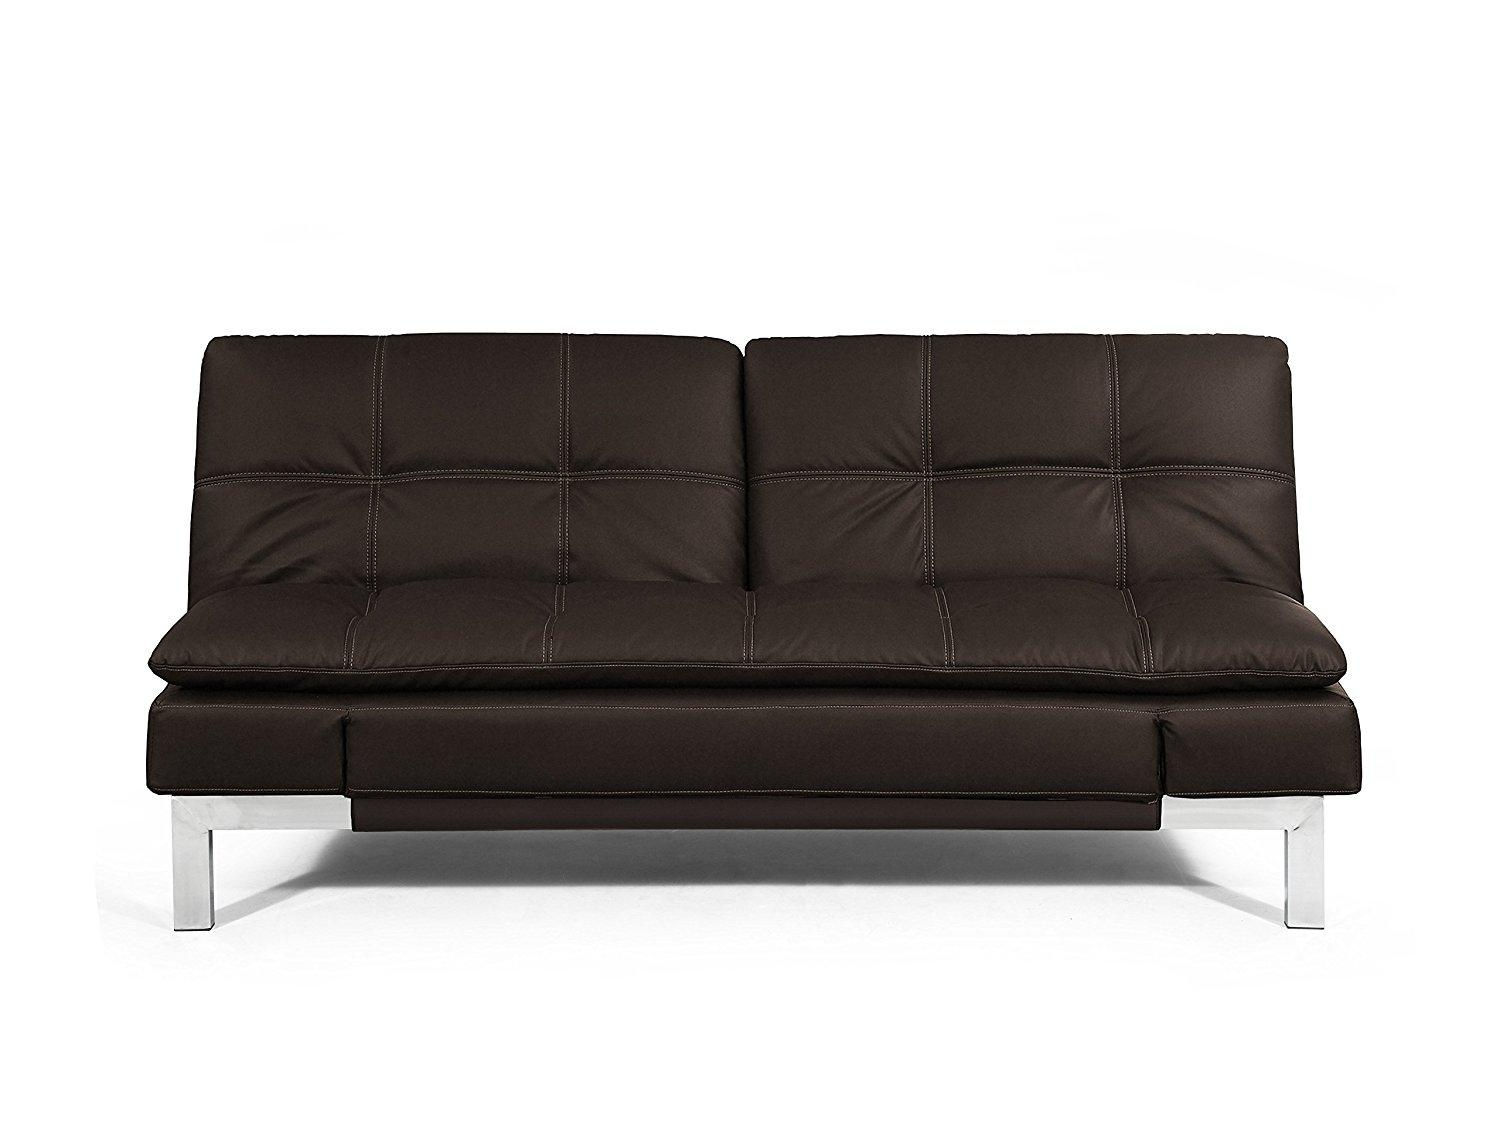 Euro Lounger Sofa With Design Ideas 28626 | Kengire Intended For Euro Lounger Sofa Beds (View 11 of 20)